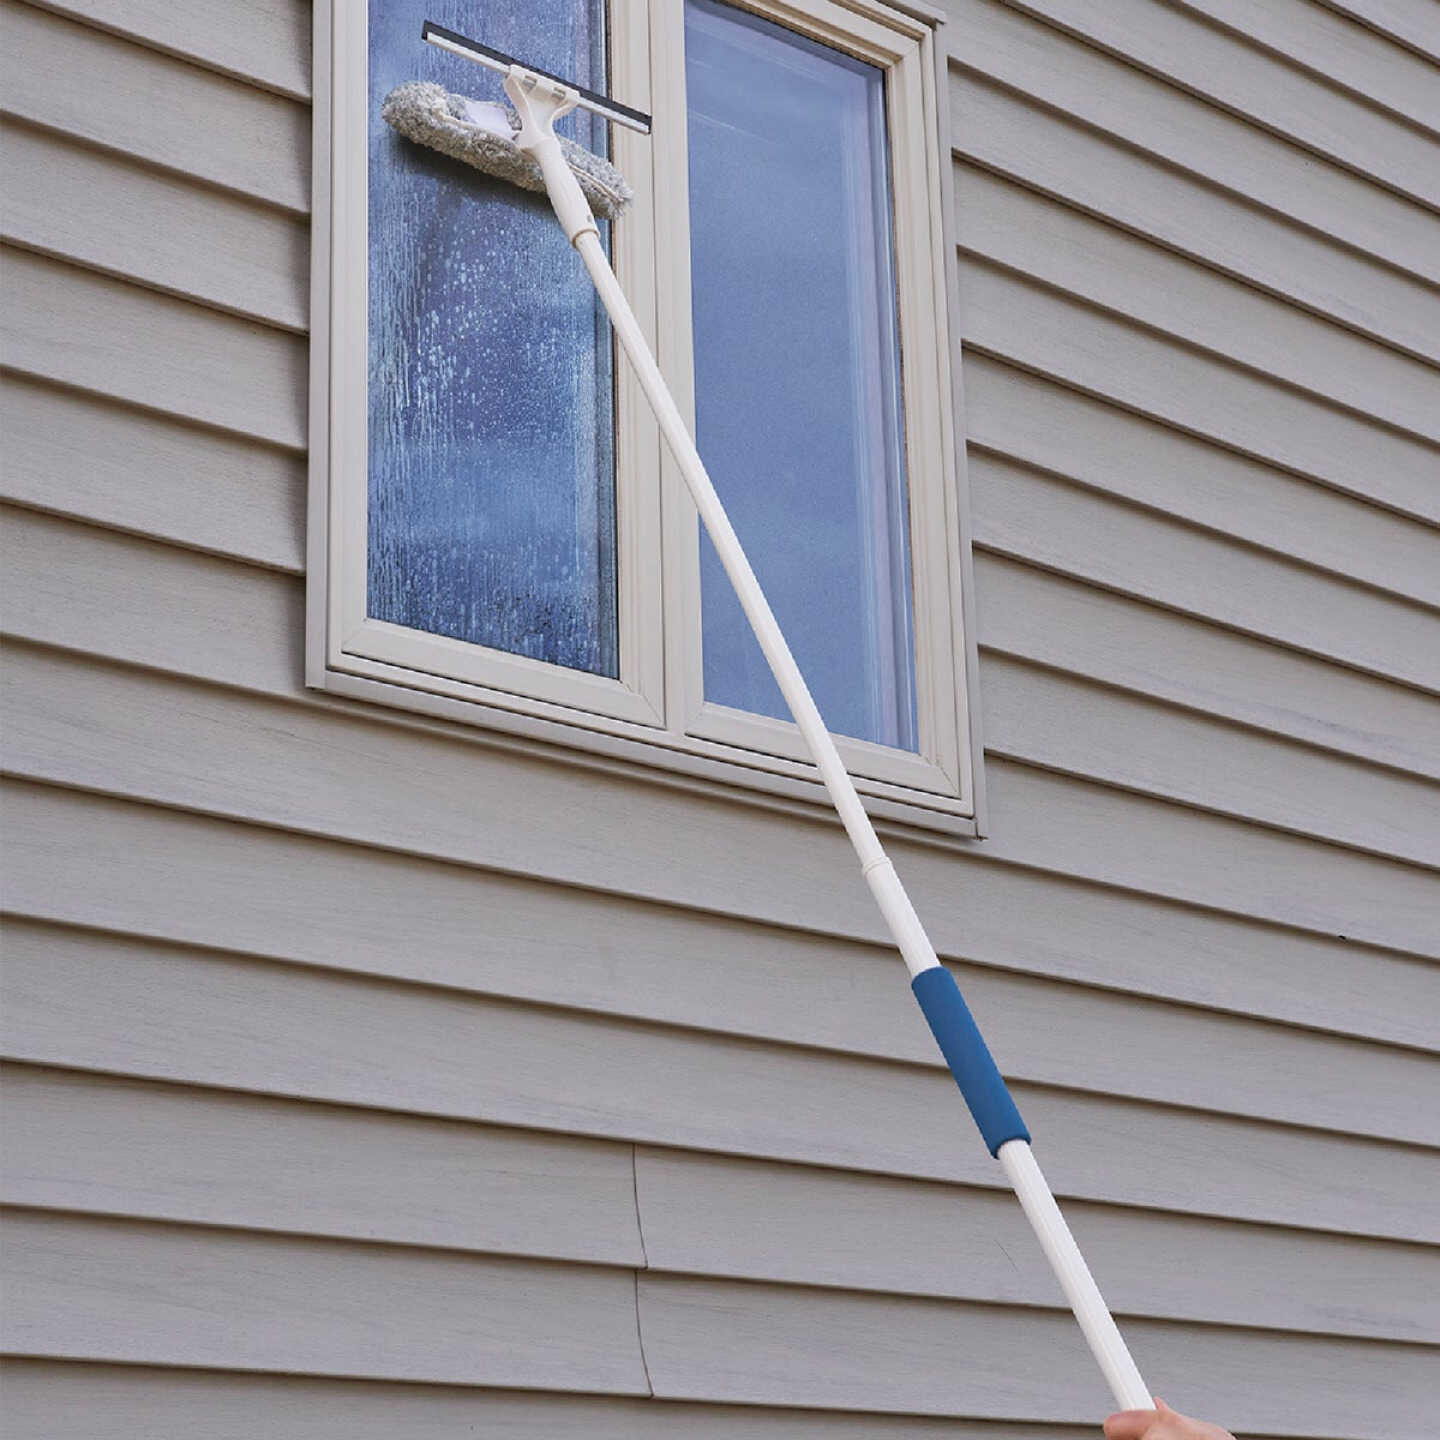 Unger 12 In. Outdoor Window Squeegee and Scrubber Kit Image 2